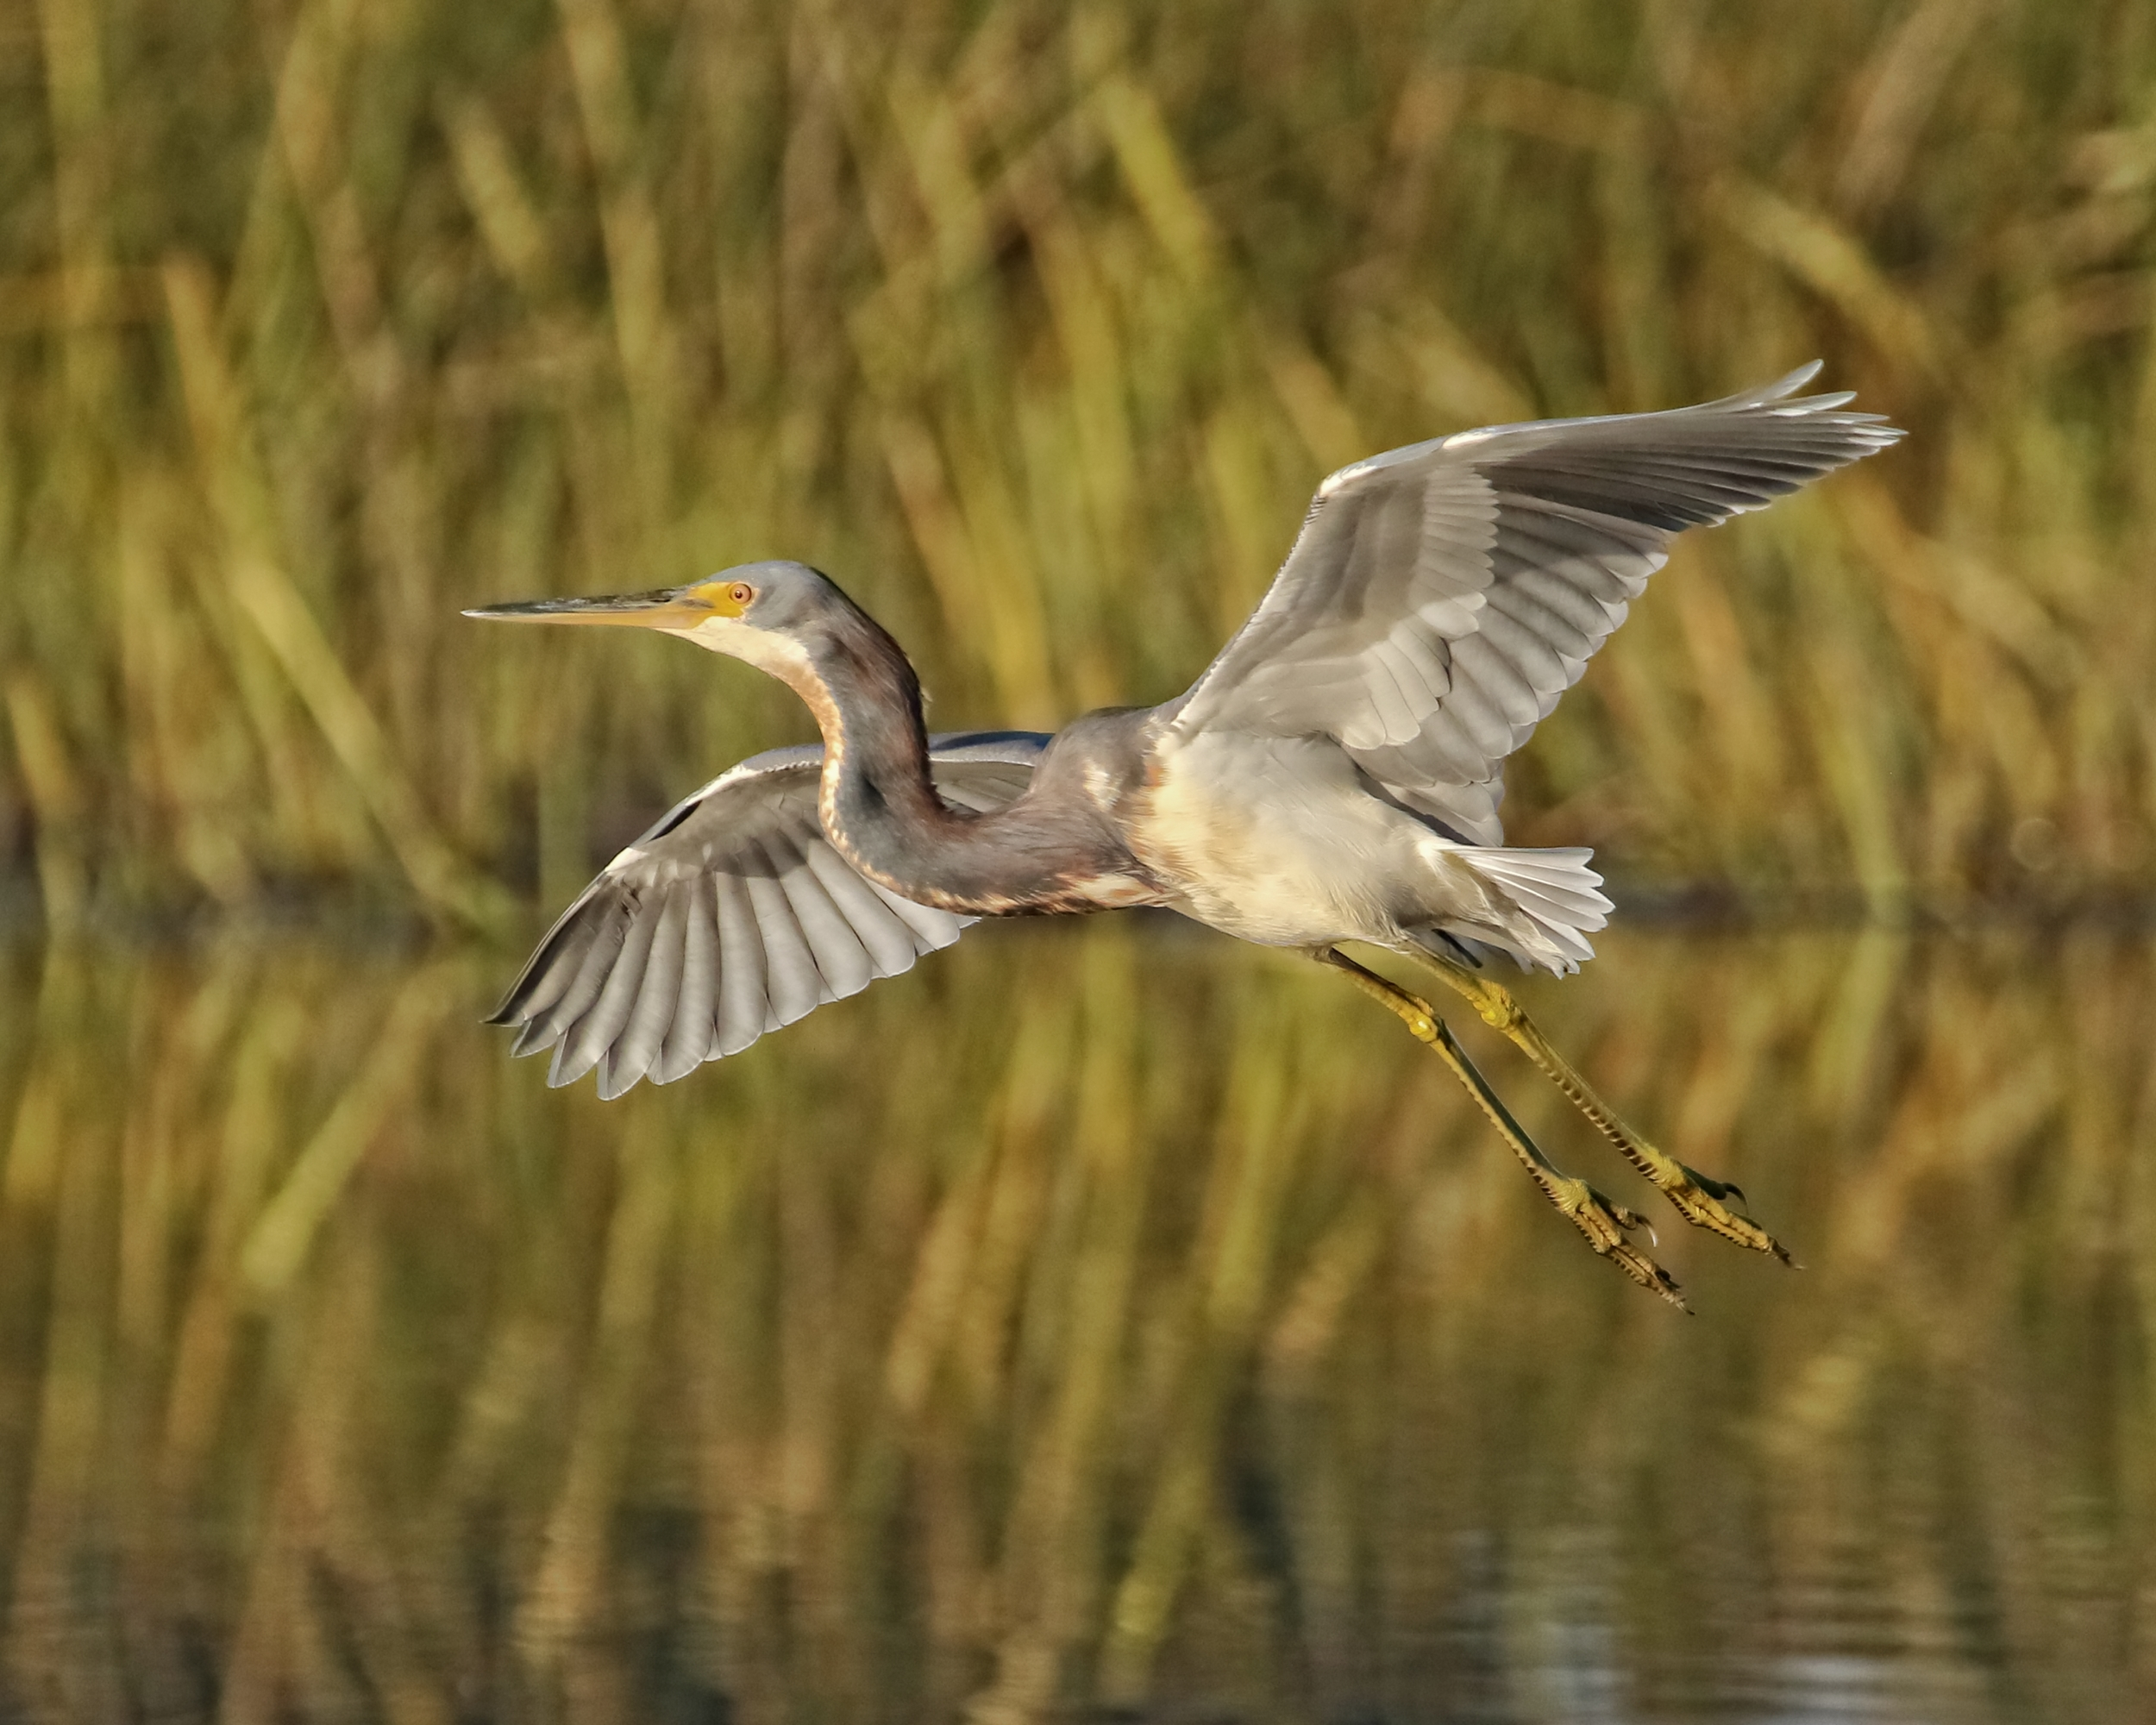 Thankfully this juvenile Tricolored Heron is allowing me some great photo opportunities. ..like my lil Buddy use to..note the changing colors in the marsh grass as autumn colors begin to fade to brown..